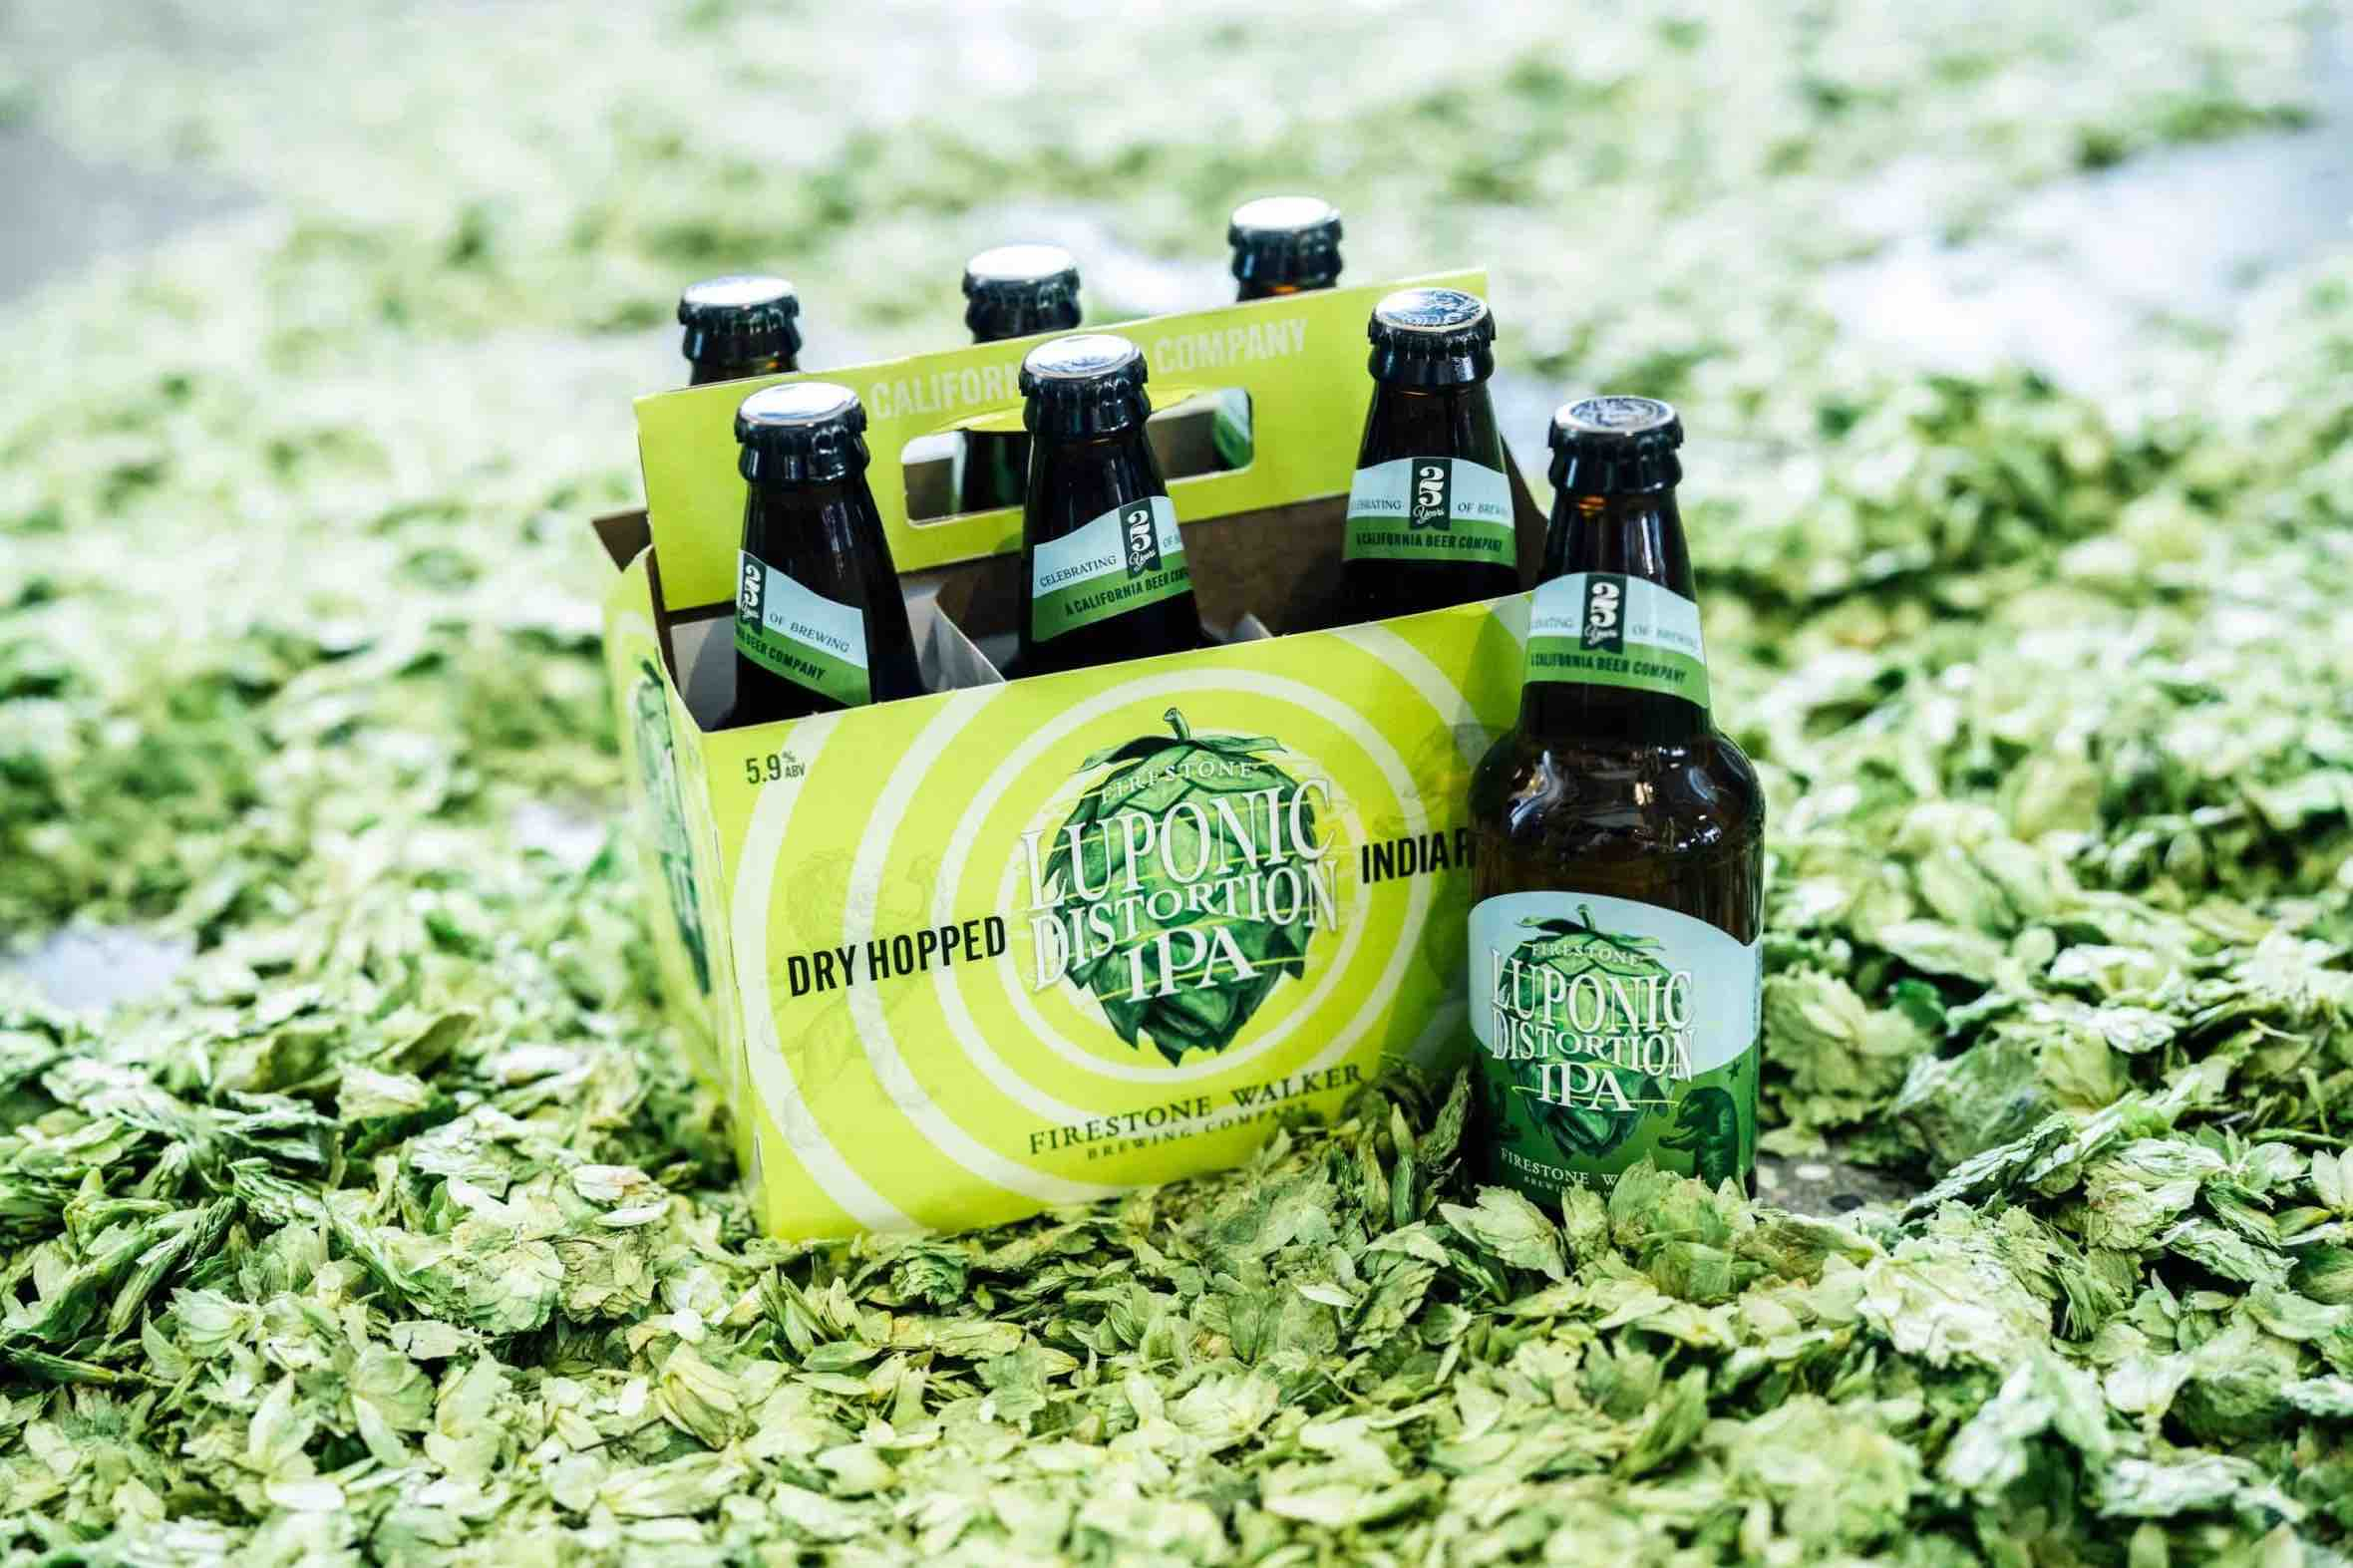 image of Luponic Distortion IPA No. 018 courtesy of Firestone Walker Brewing